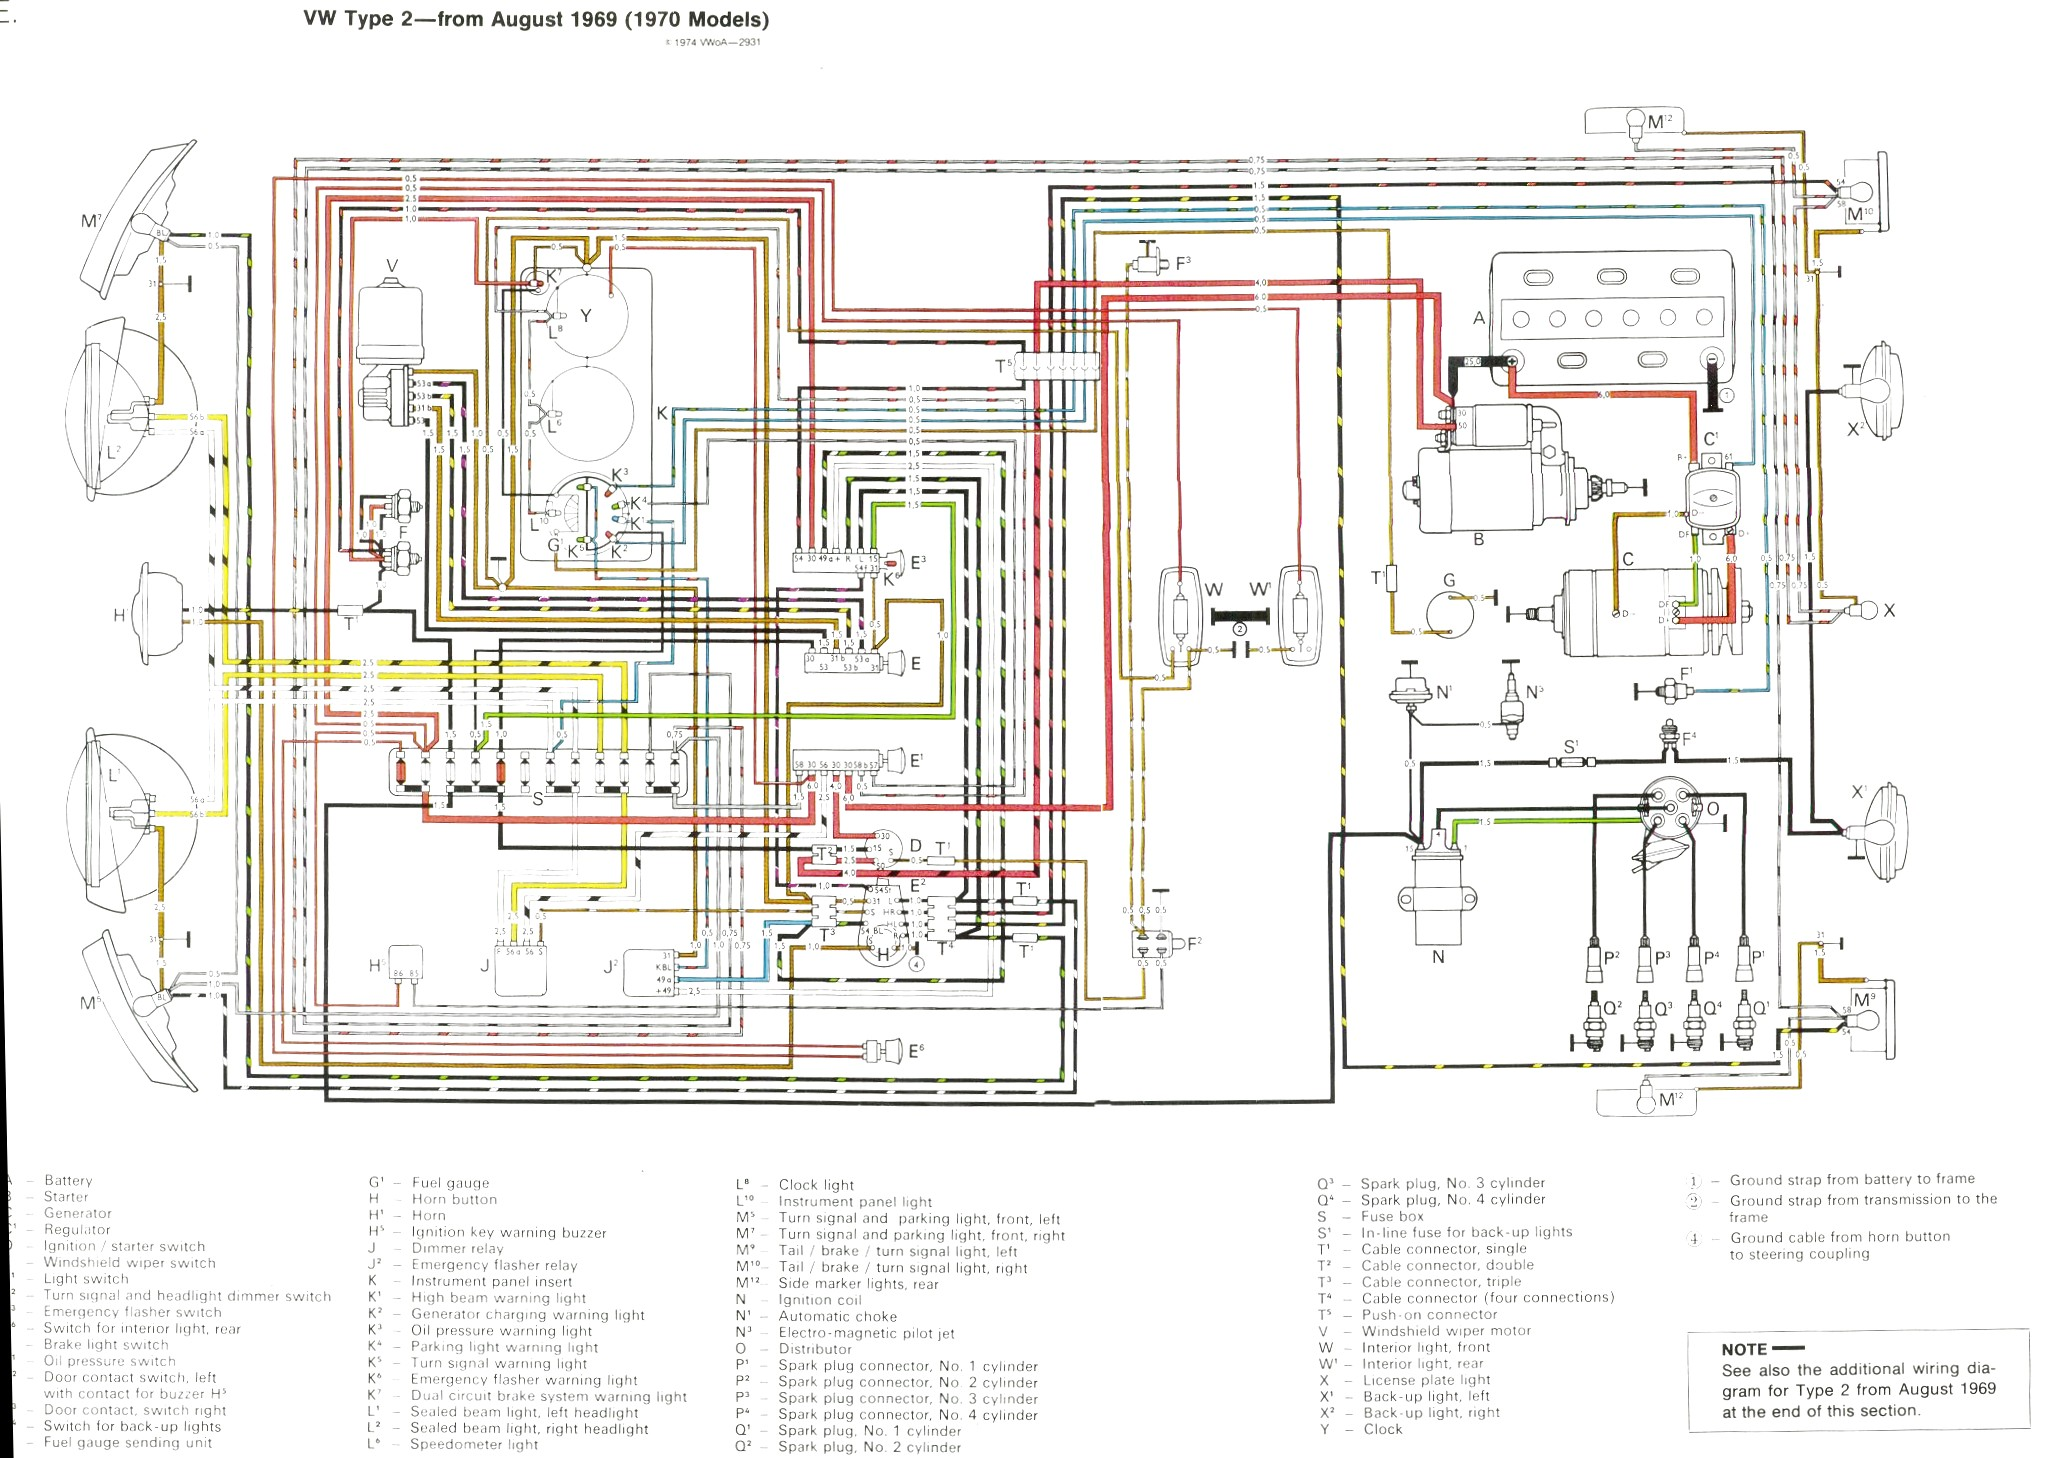 bus 69 70 vintagebus com vw bus (and other) wiring diagrams 1974 vw beetle wiring diagram at virtualis.co